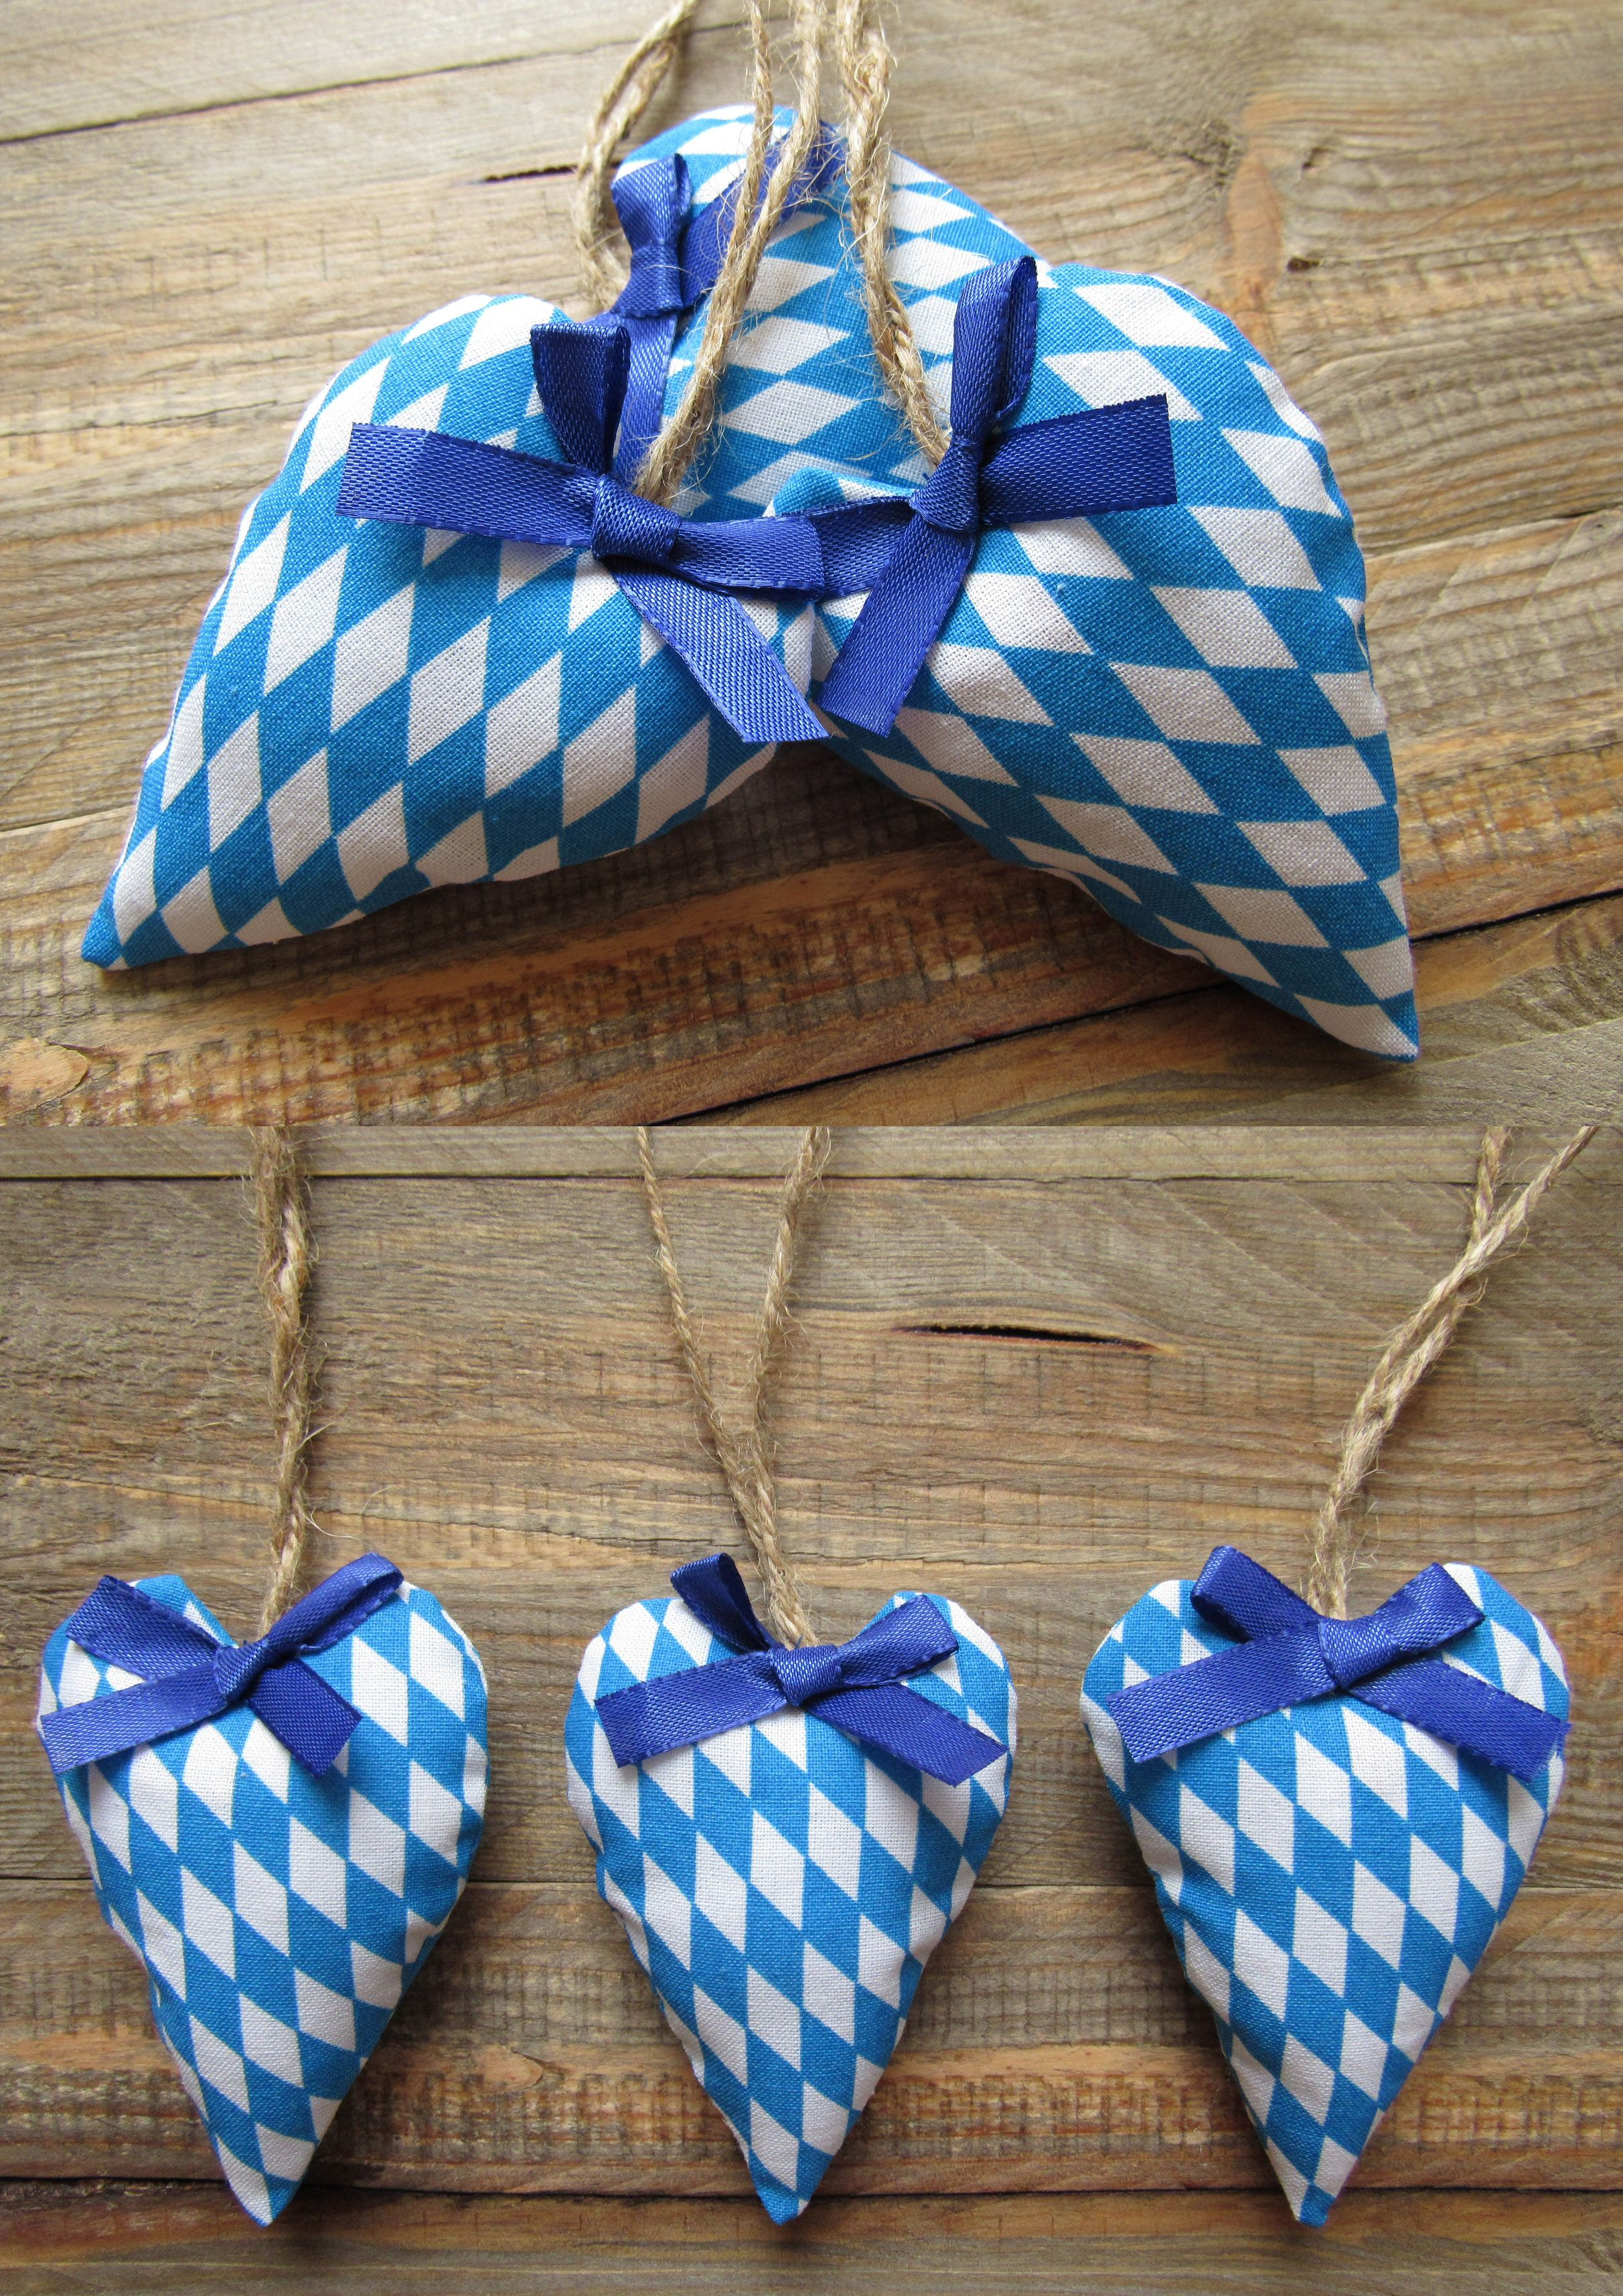 set of 3 fabric hearts oktoberfest heart hangers traditionally diamonds blue white oktoberfest. Black Bedroom Furniture Sets. Home Design Ideas